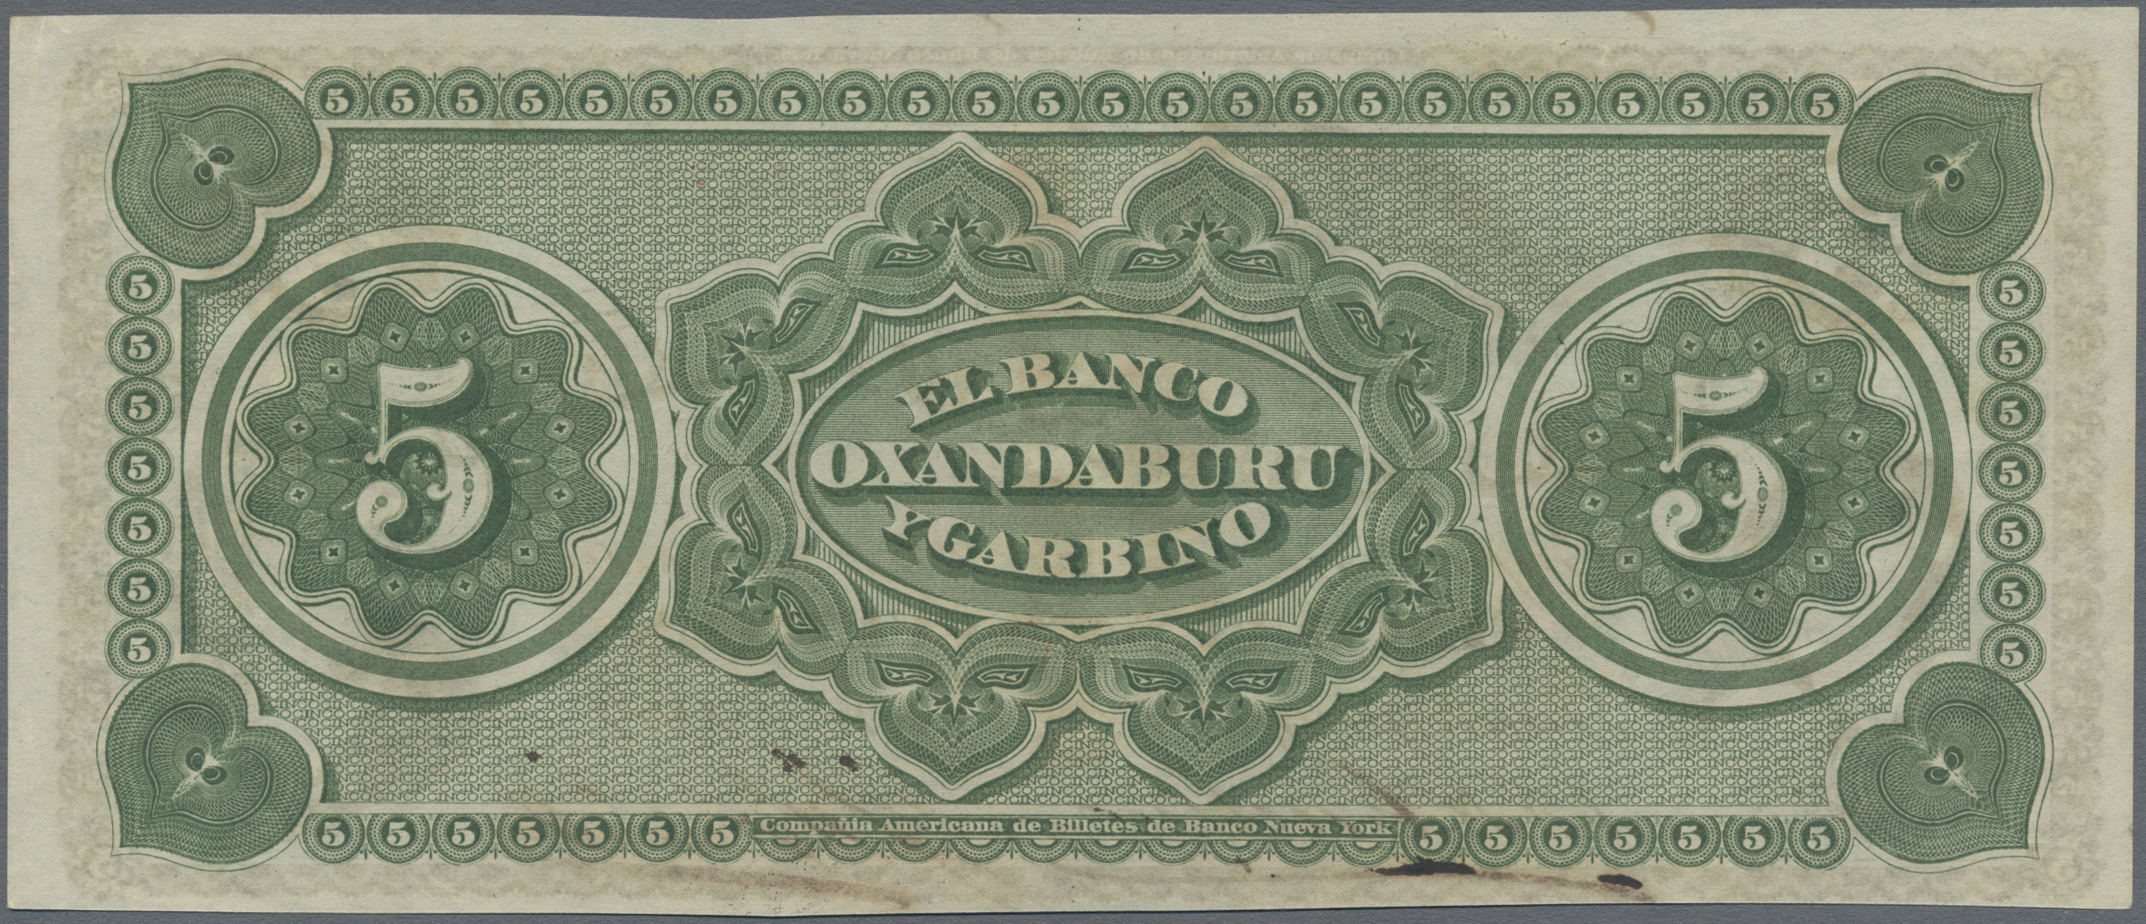 Lot 00018 - Argentina / Argentinien | Banknoten  -  Auktionshaus Christoph Gärtner GmbH & Co. KG Sale #48 The Banknotes